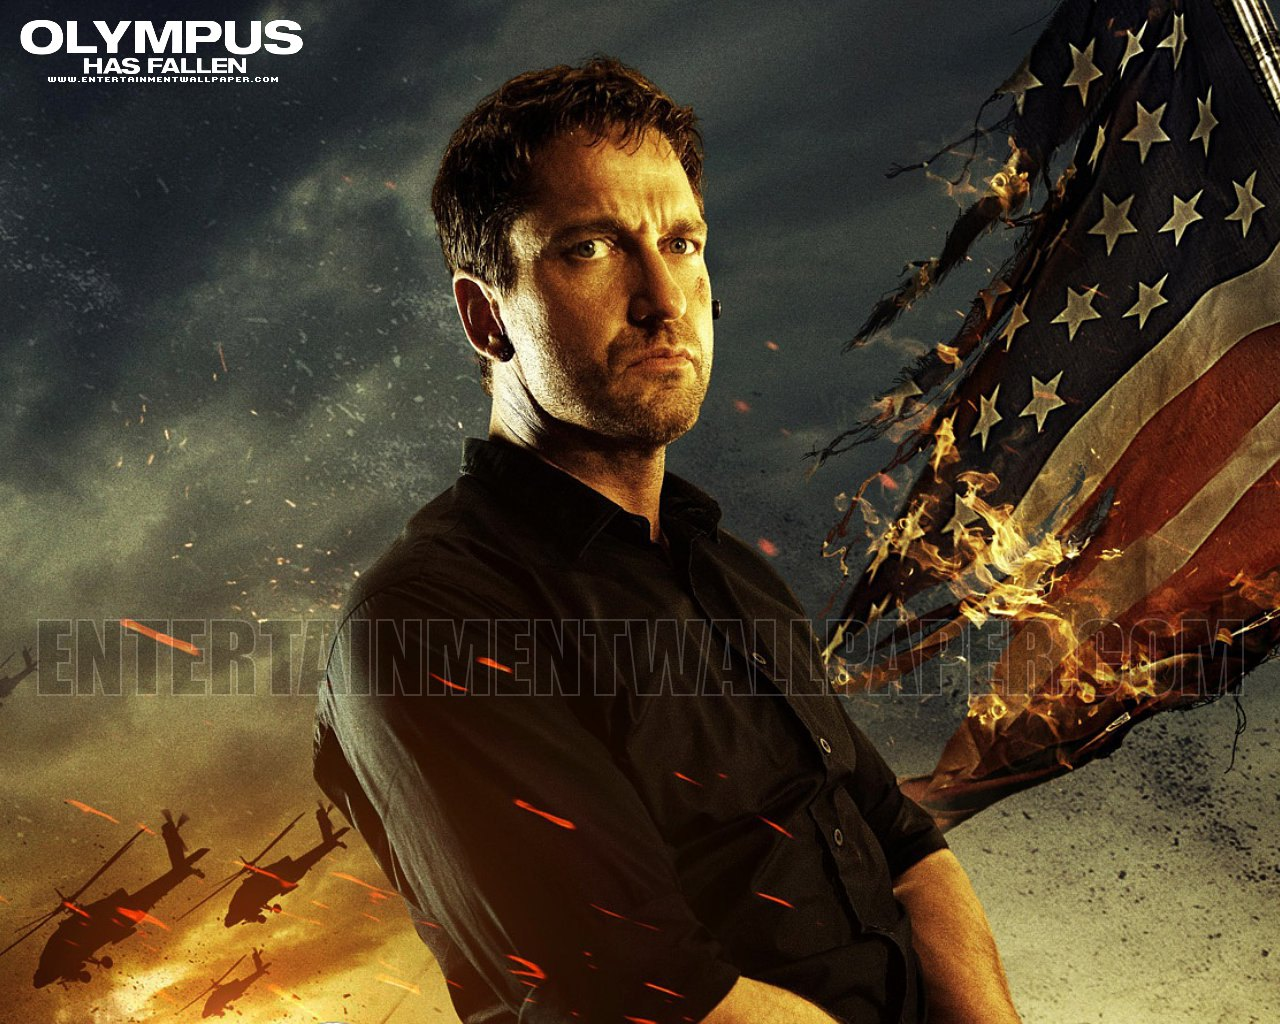 olympus has fallen wallpaper 10038300 size 1280x1024 more olympus has 1280x1024